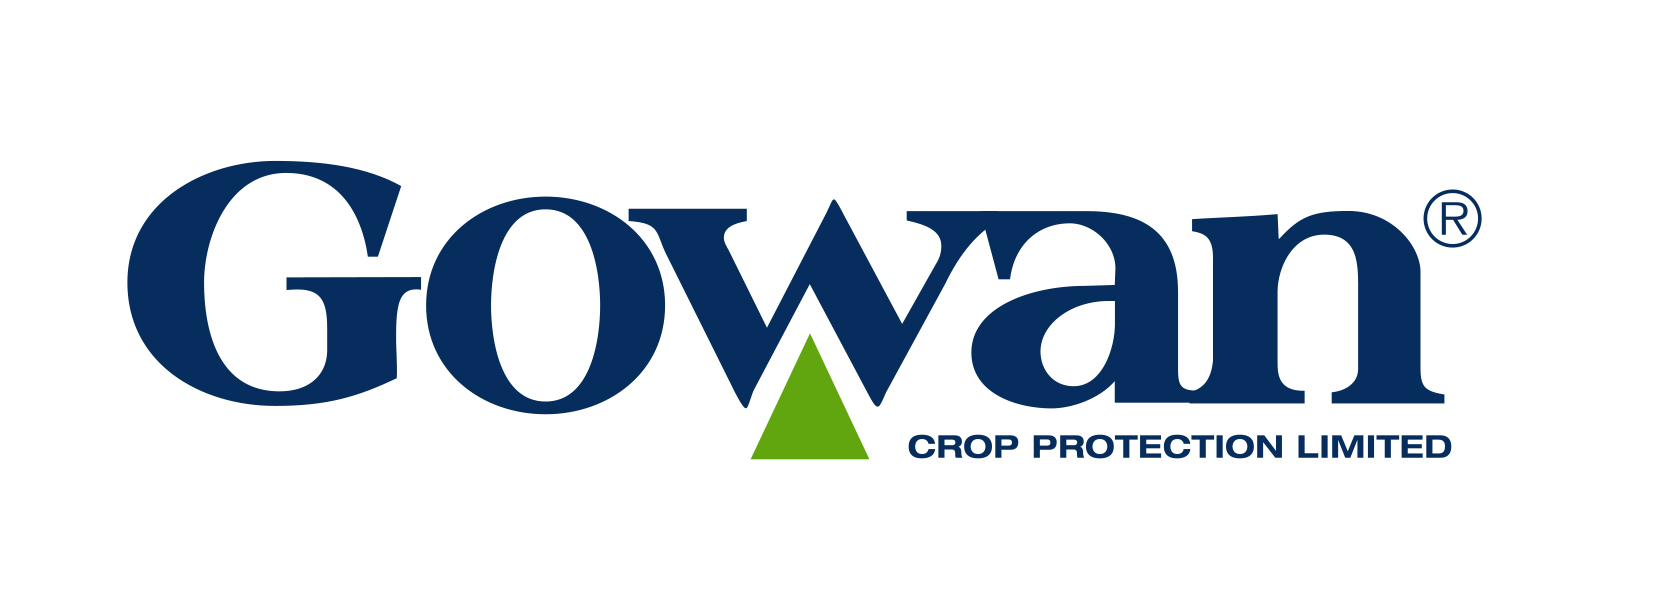 Gowan Crop Protection Limited